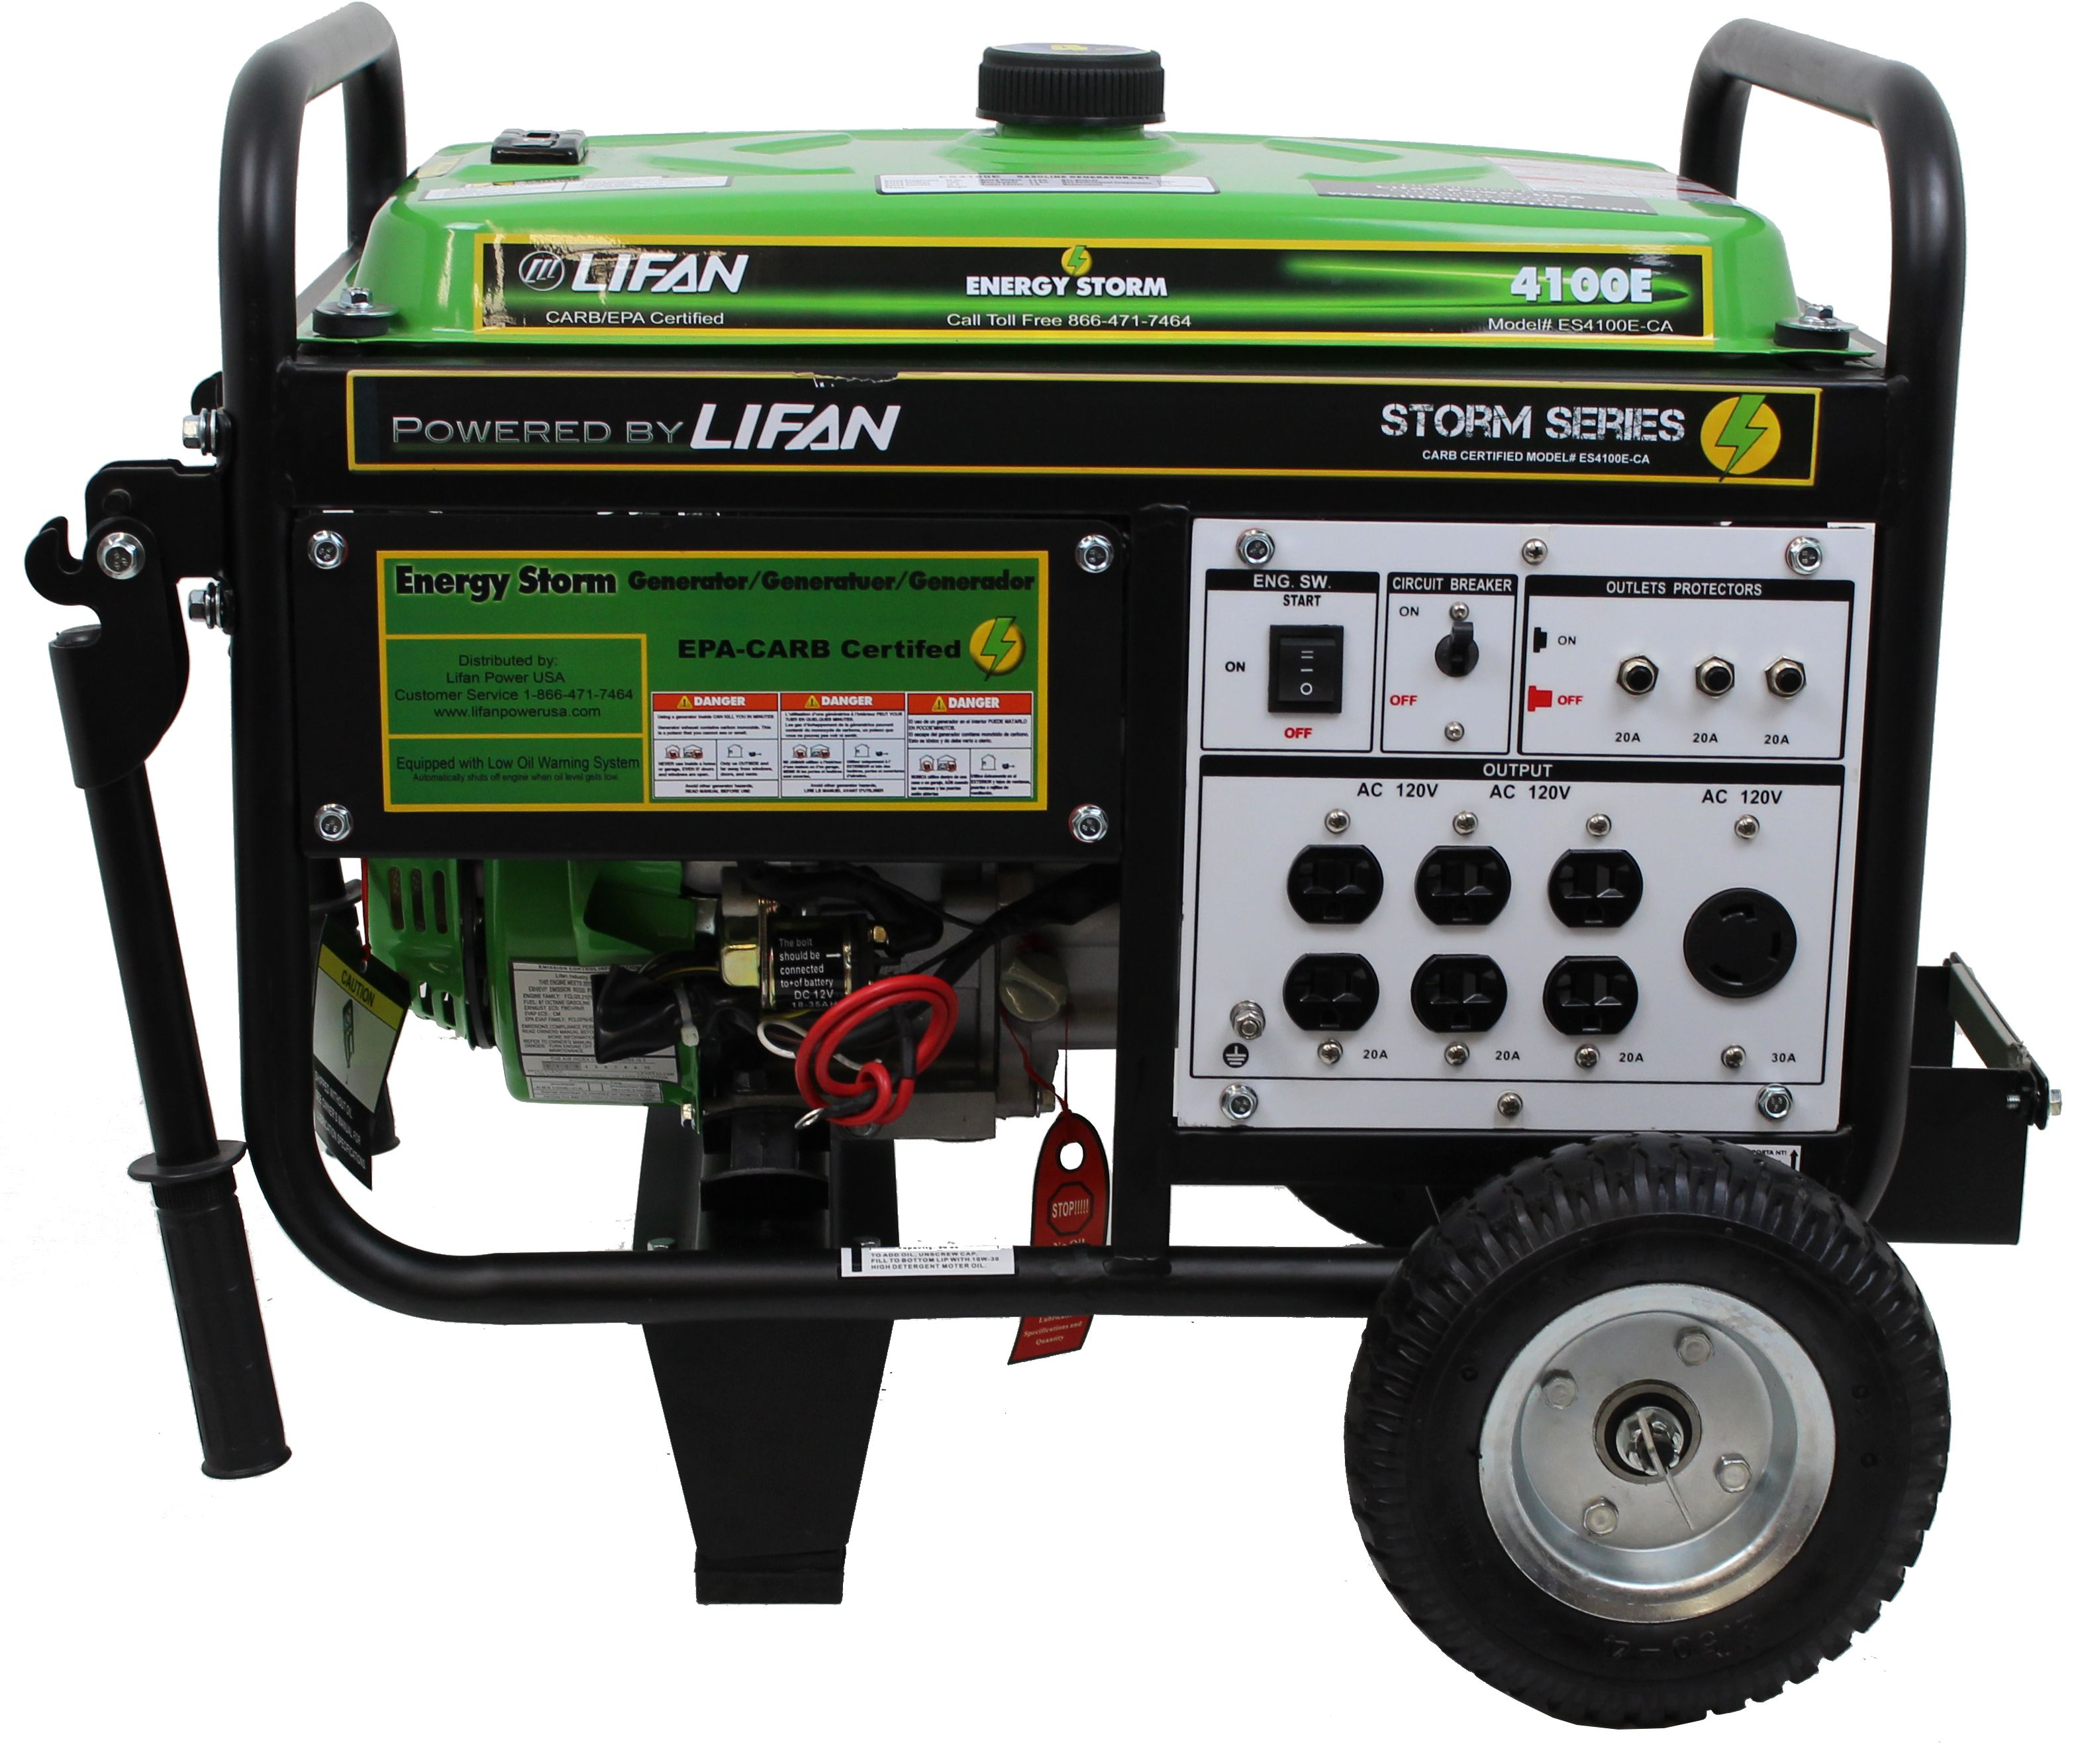 Lifan Generators 3600 Wiring Diagram Diagrams Chinese Atv Engine Parts Es4100 E Photos Power Usa 125cc